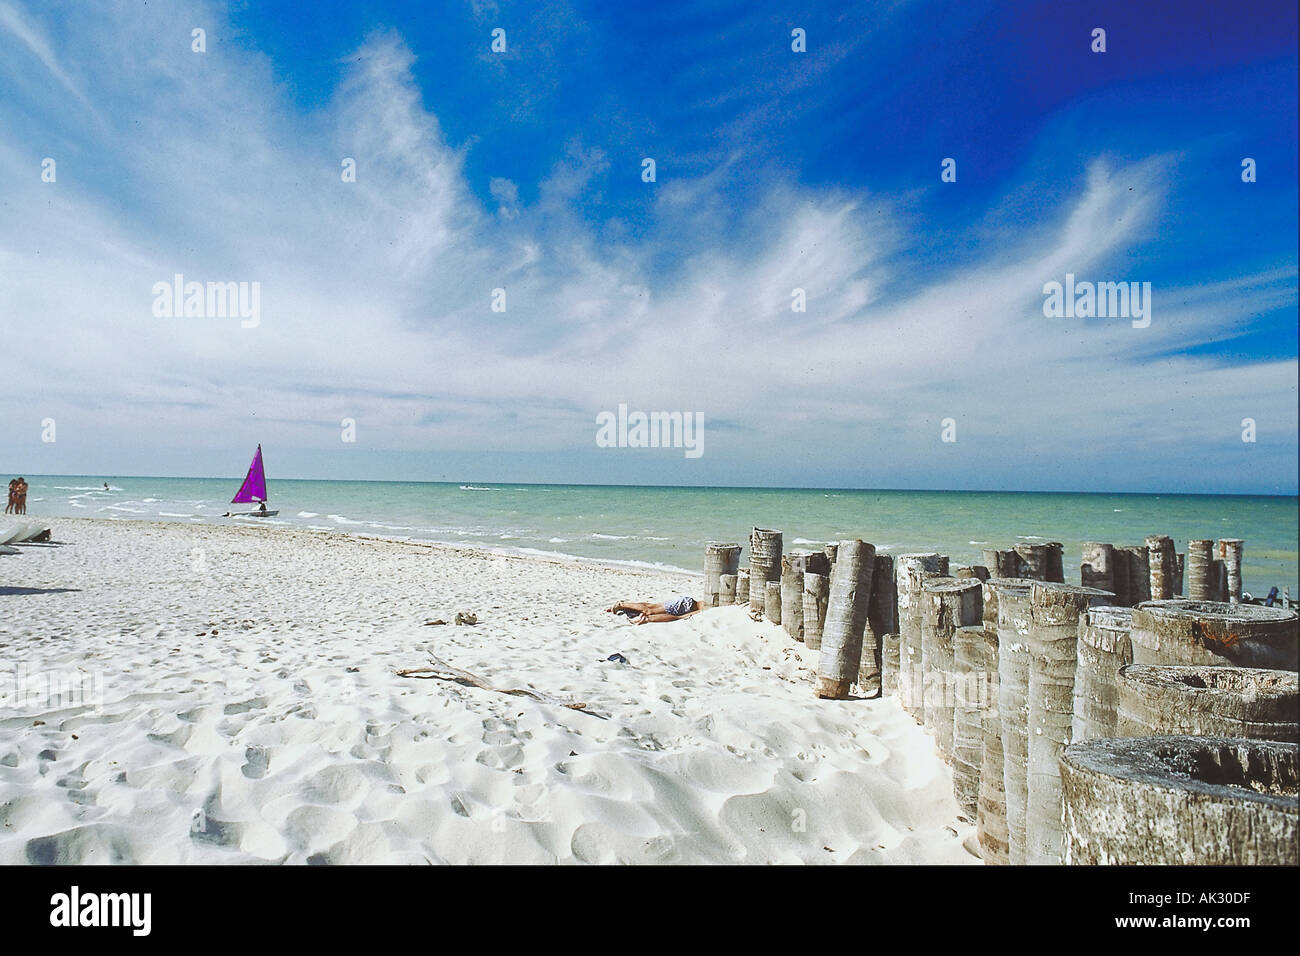 Beach with sailboat in distance Progresso Yucatan Mexico - Stock Image